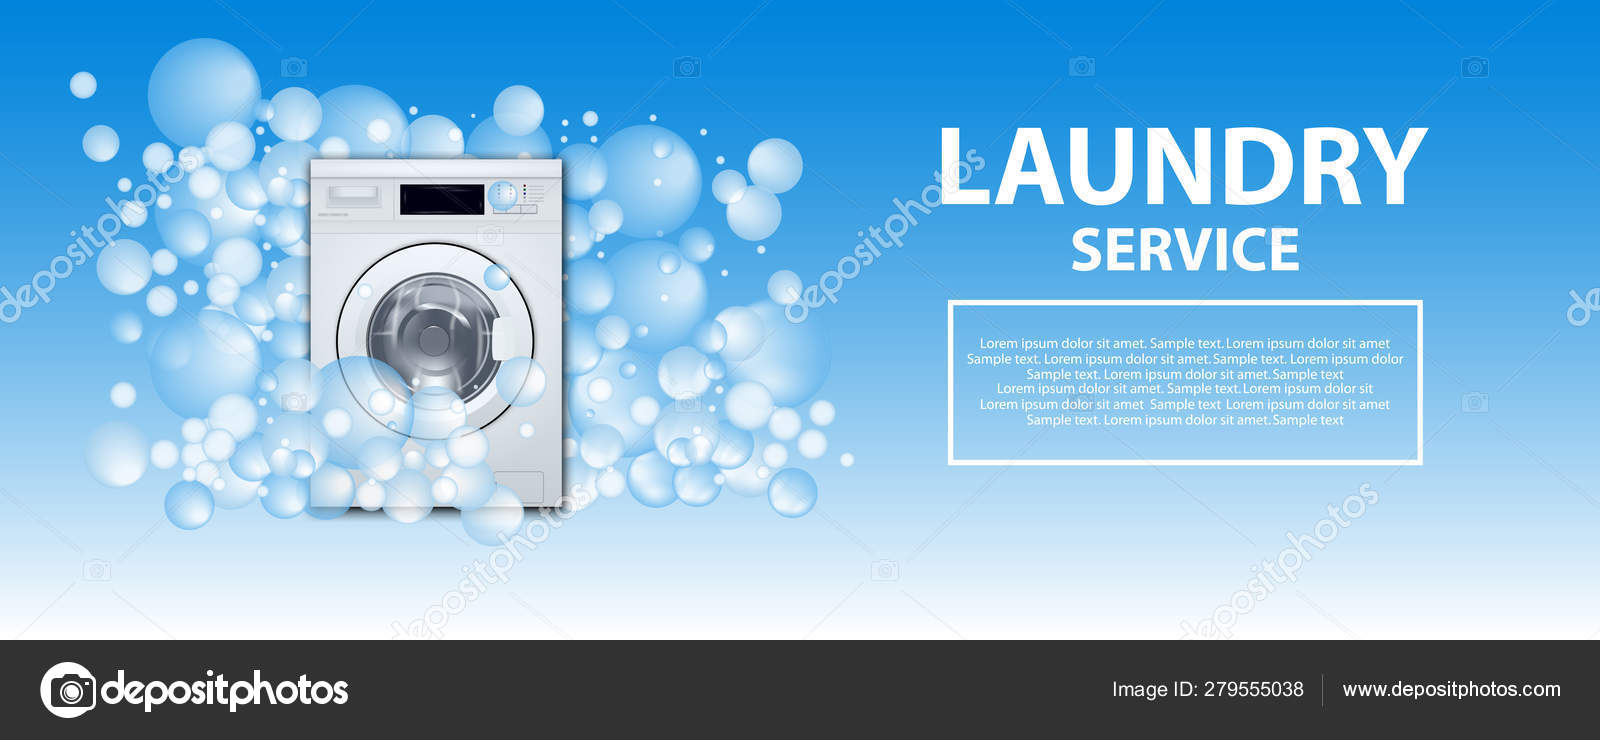 laundry service poster or banner washing machine front loading background with soap bubbles 3d realistic illustration laundry detergent advertising vector image by c nataliakarebina vector stock 279555038